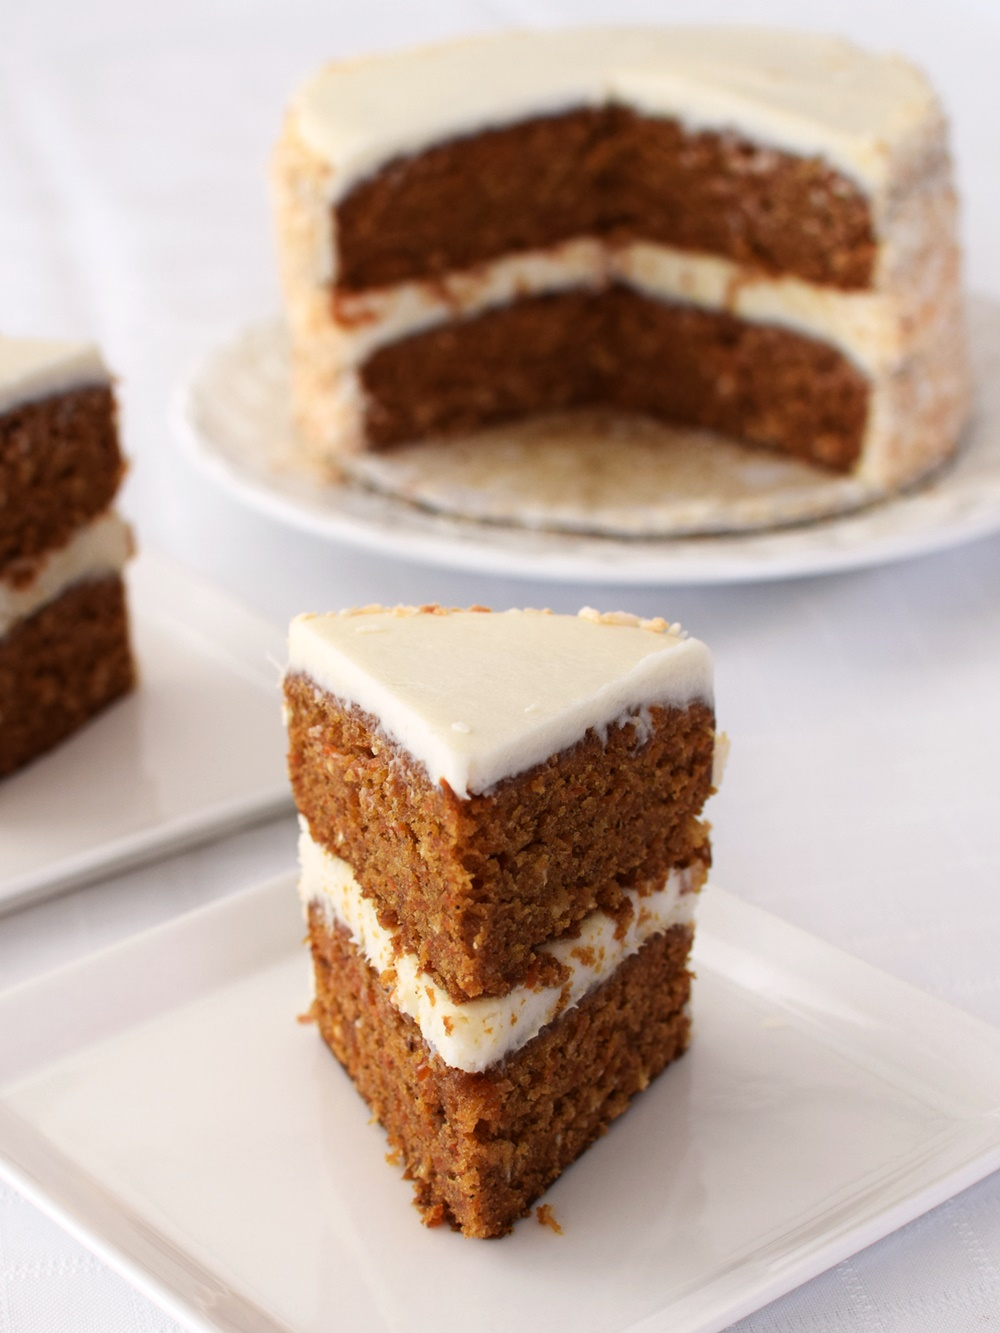 Cafe Indigo Vegan Goodness Layer Cakes - Amazingly dairy-free & egg-free! (carrot cake pictured)